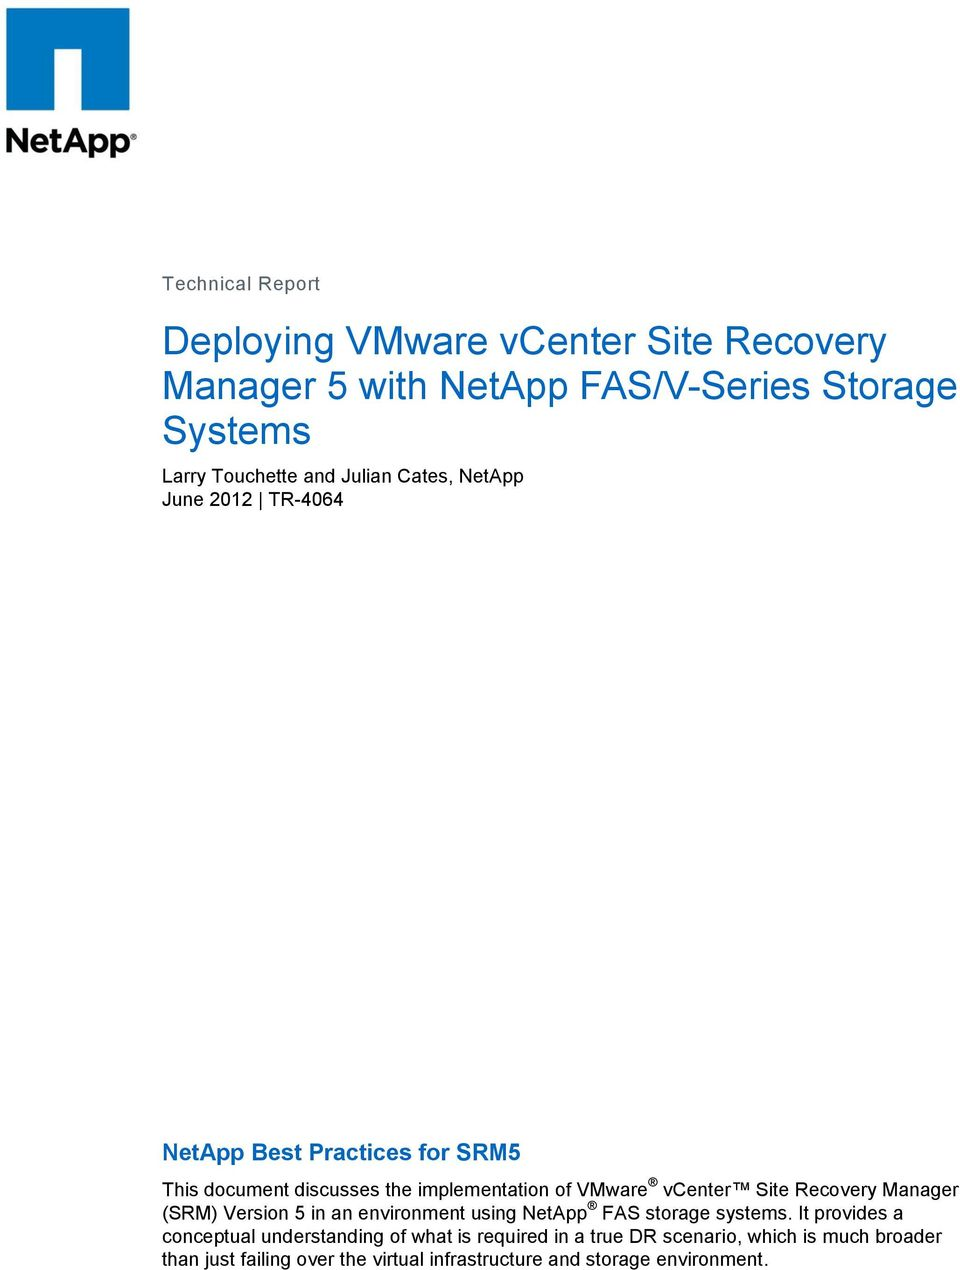 Site Recovery Manager (SRM) Version 5 in an environment using NetApp FAS storage systems.